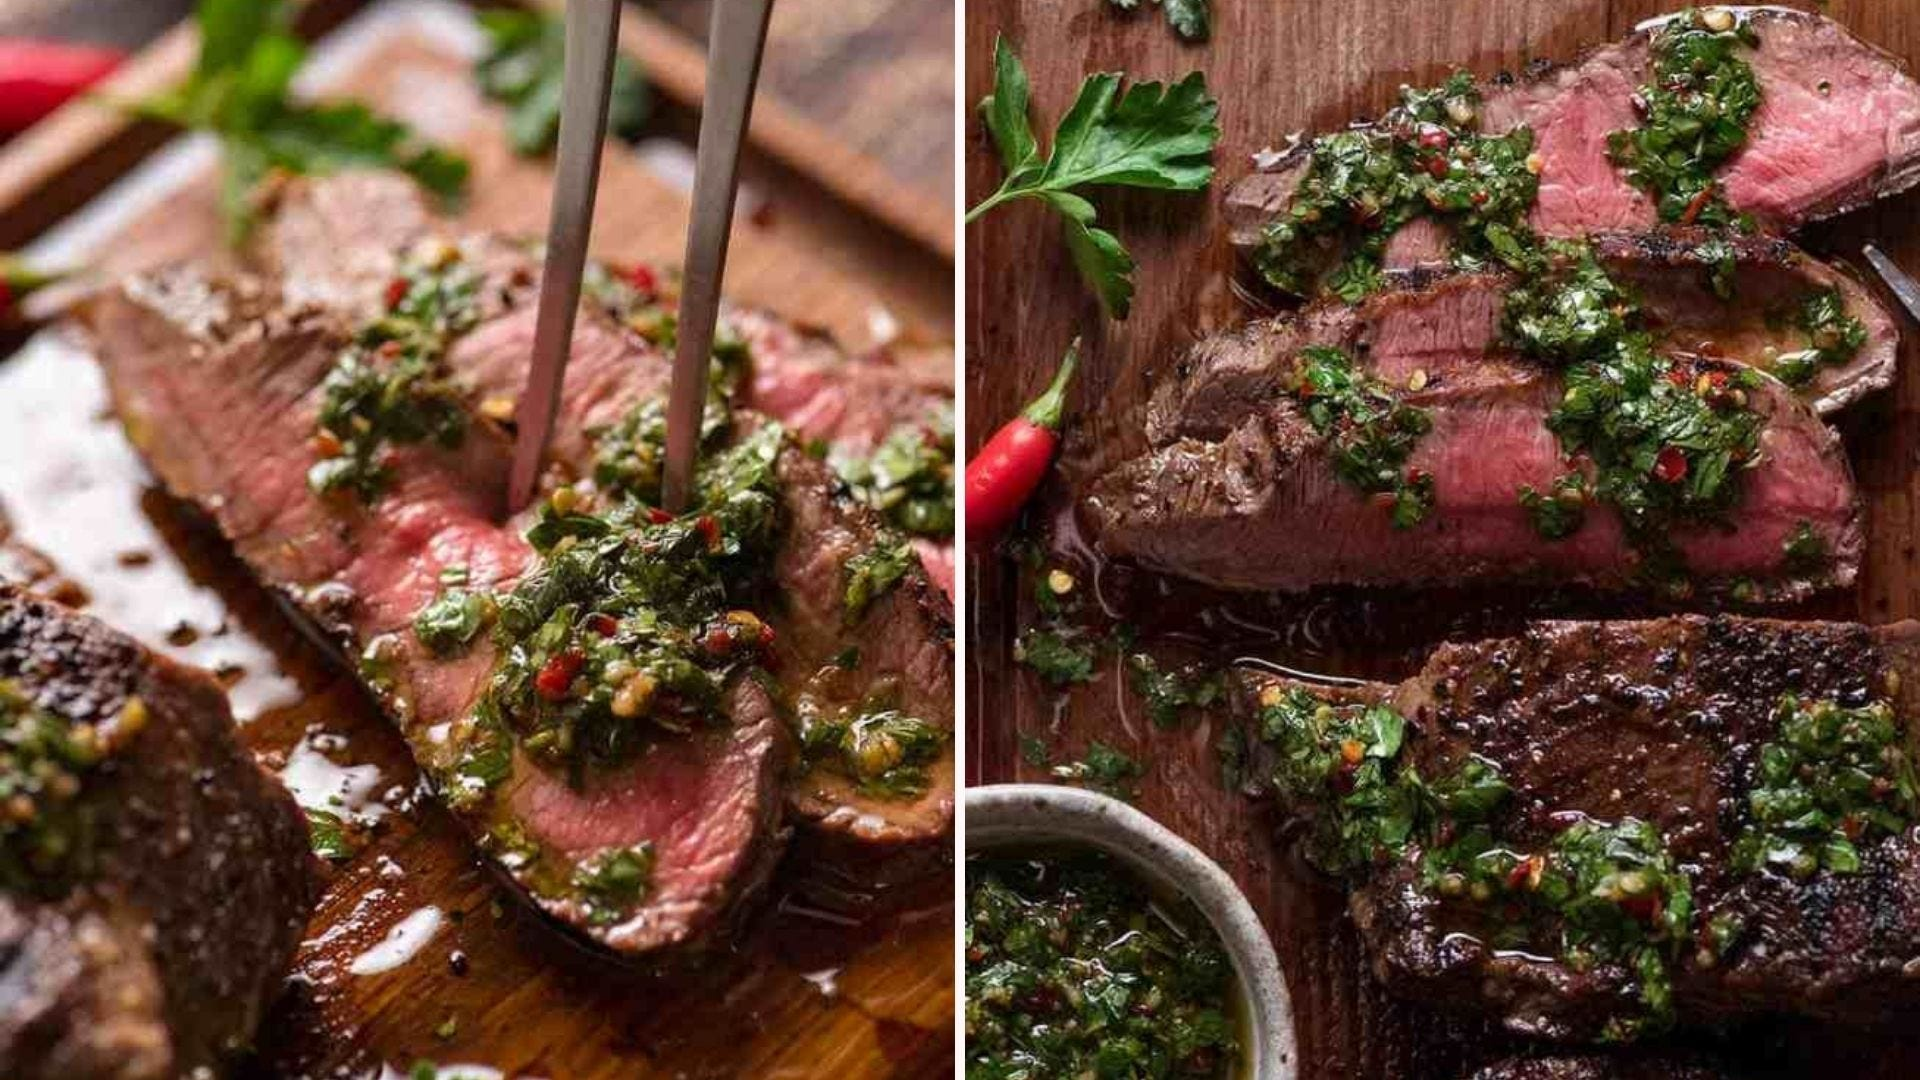 Two images of skirt steak cooked medium rare topped with fresh chimichurri sauce, sliced and ready to eat.